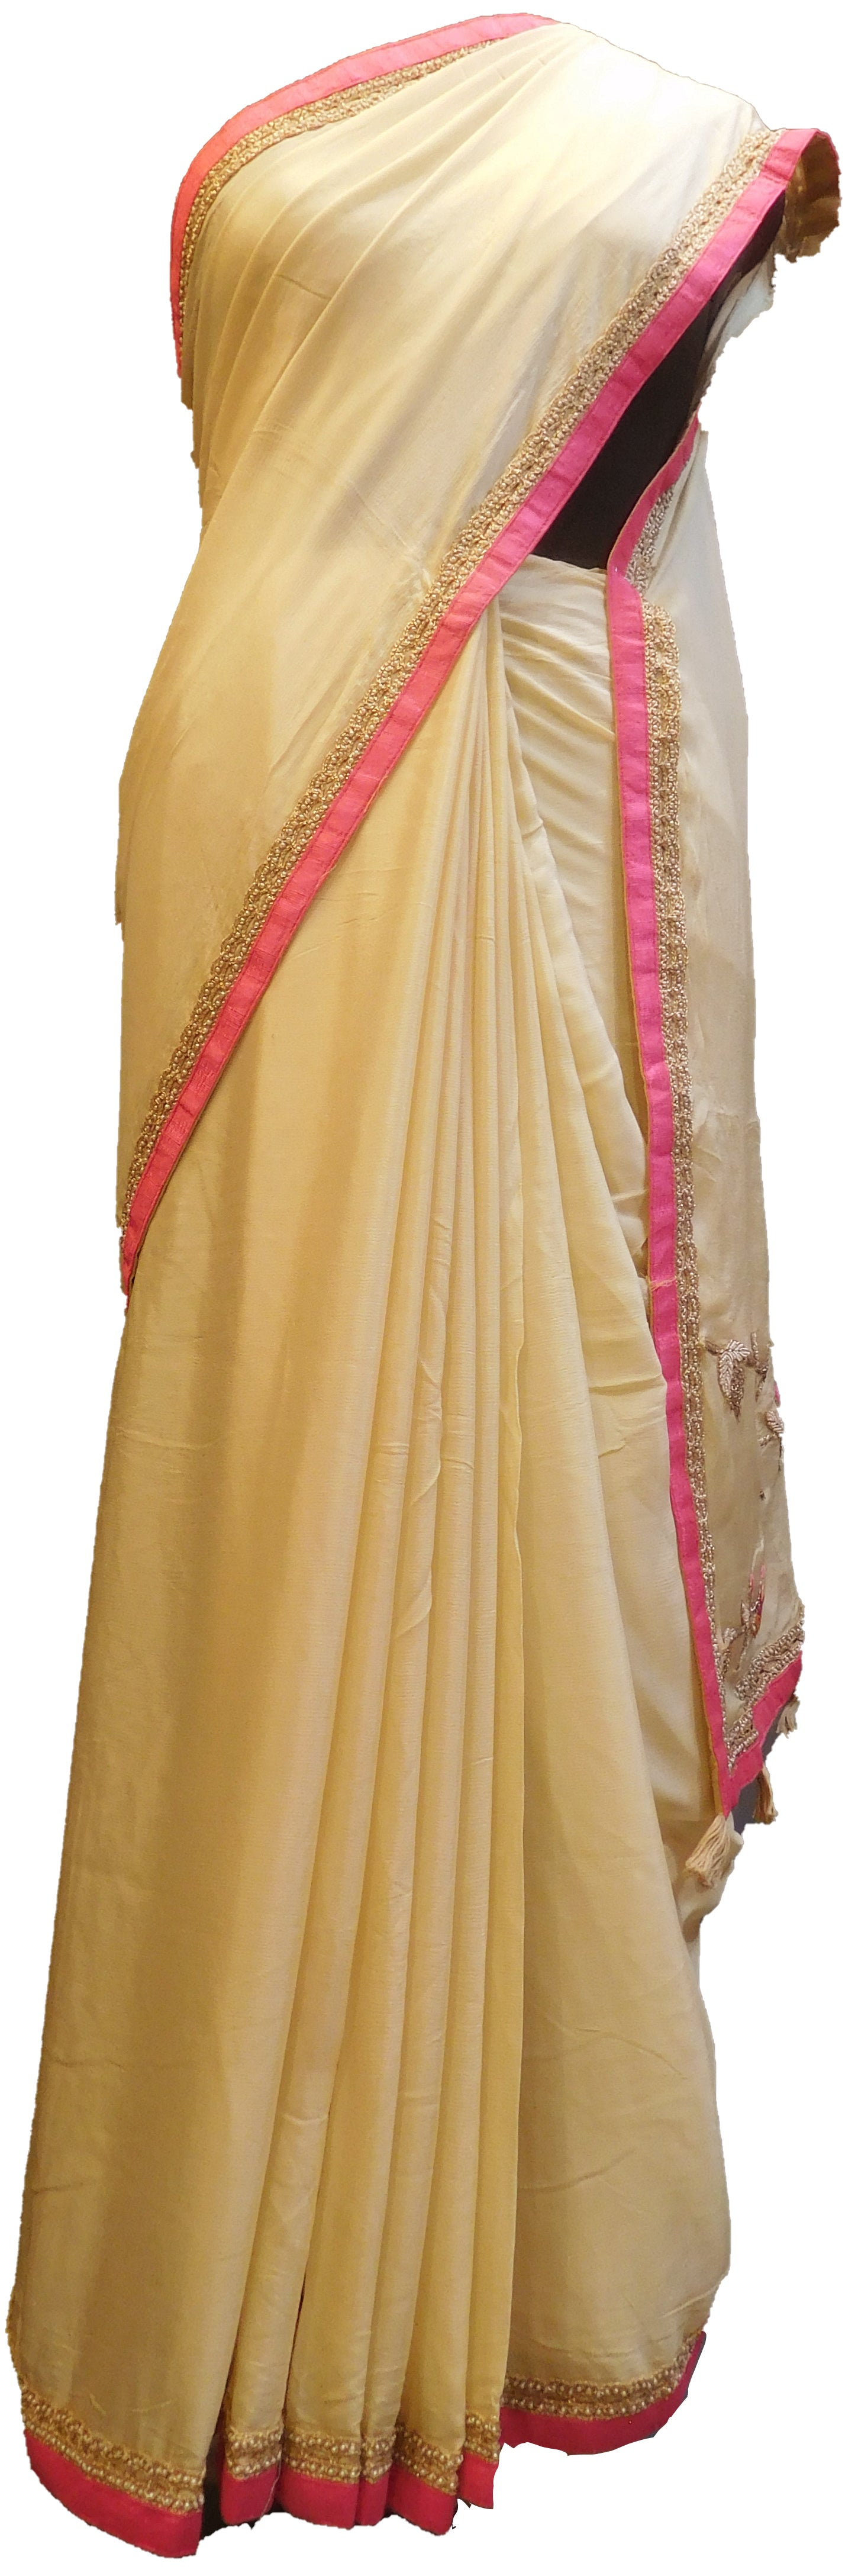 SMSAREE Cream Designer Wedding Partywear Crepe (Chinon) Thread Pearl Sequence & Bullion Hand Embroidery Work Bridal Saree Sari With Blouse Piece E502